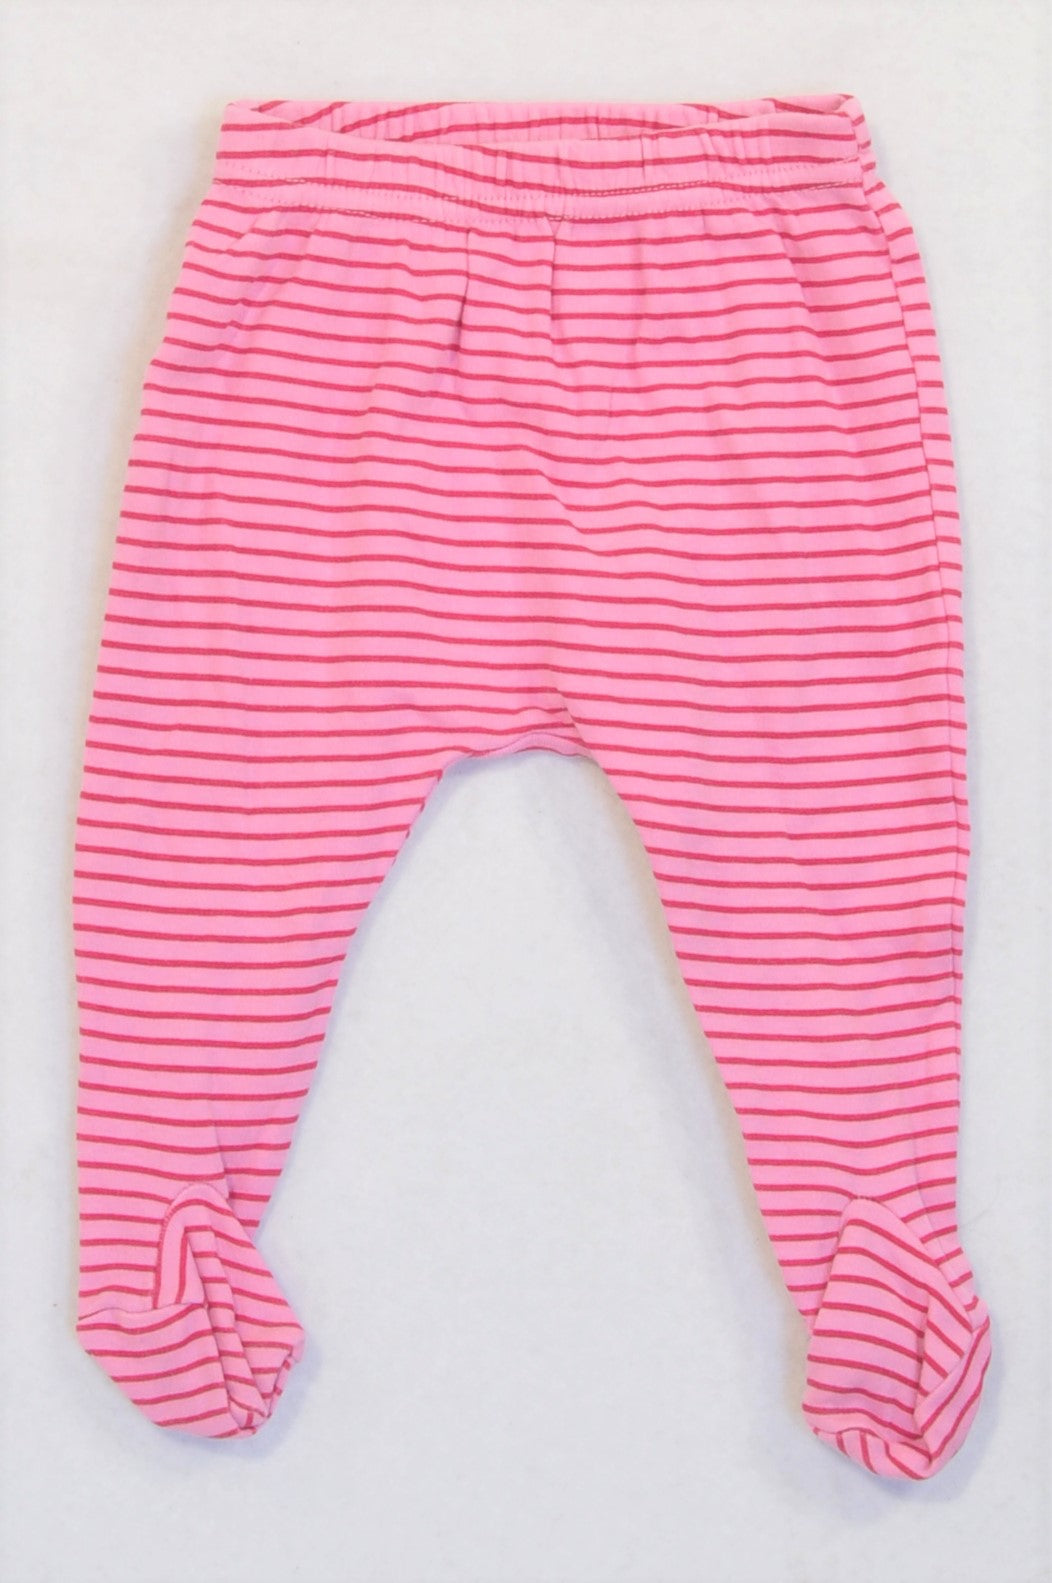 Woolworths Pink & Cerise Footed Leggings Girls 3-6 months